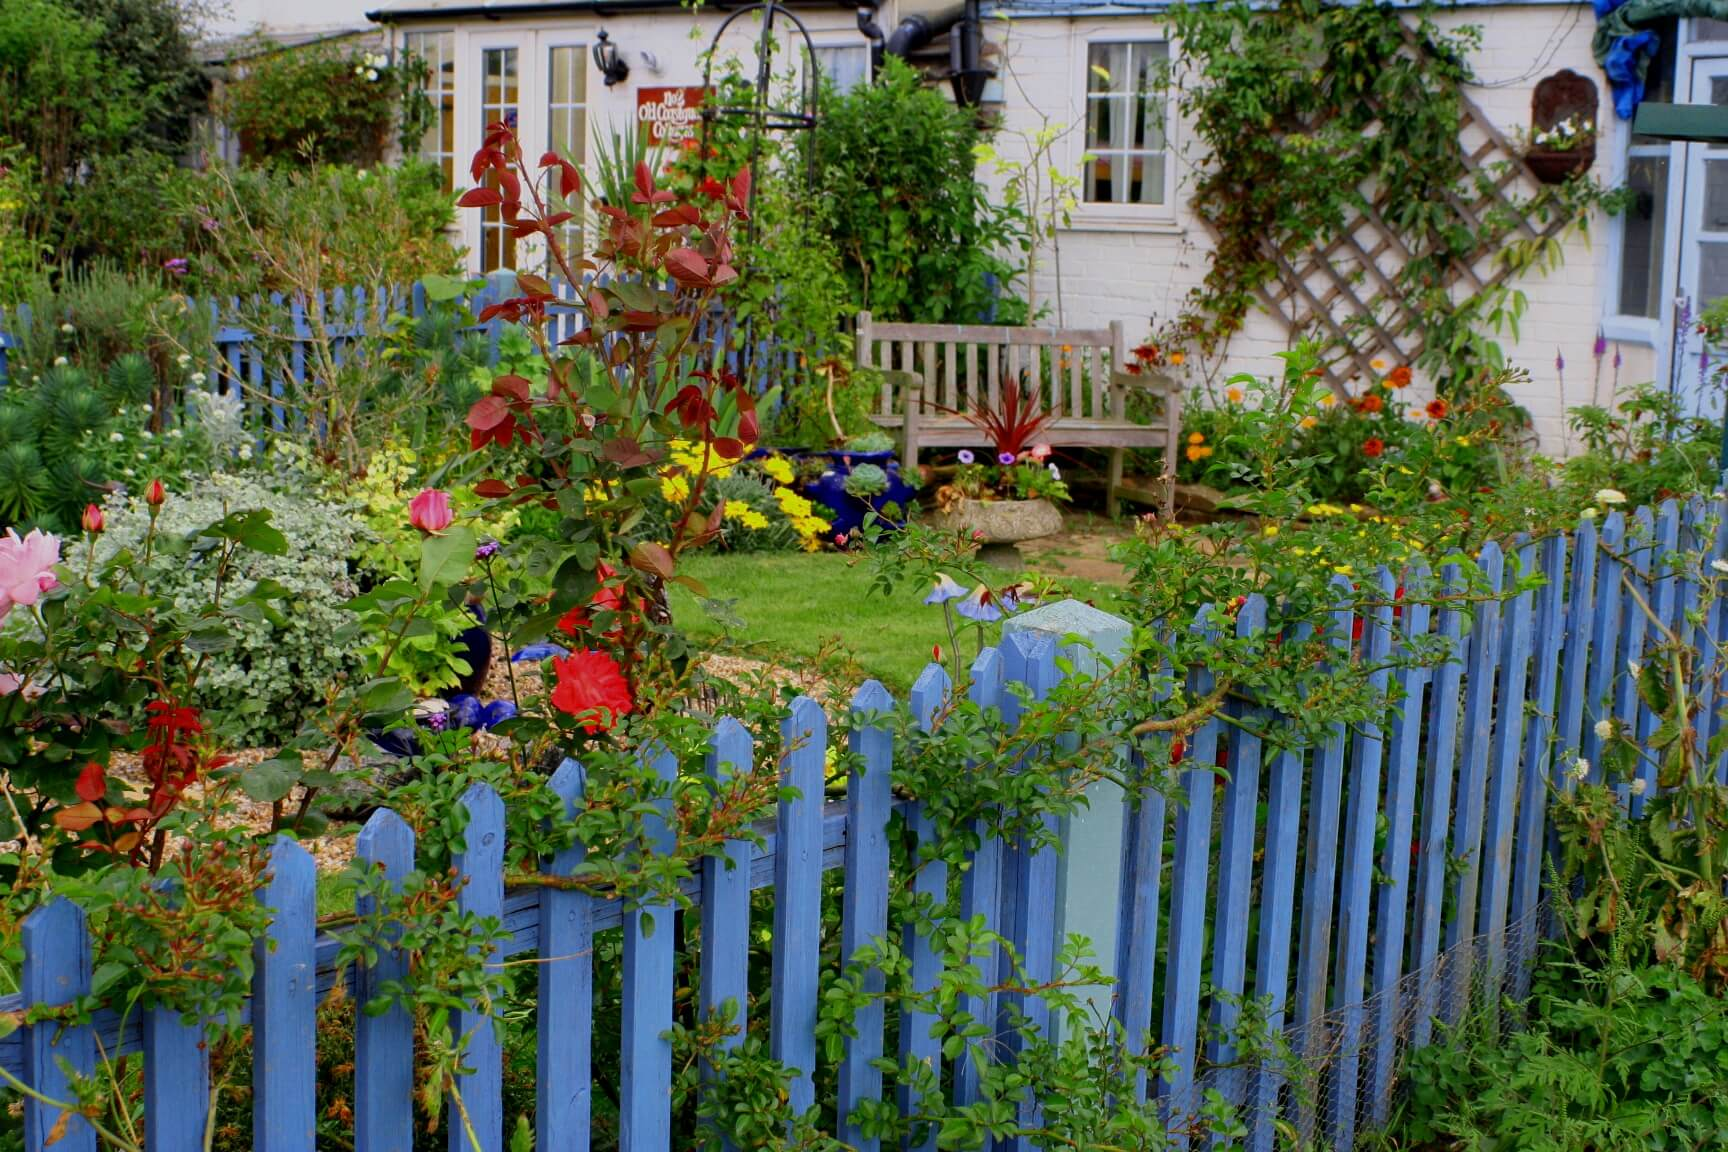 Bright Painted Fence with Rainbow Flowers